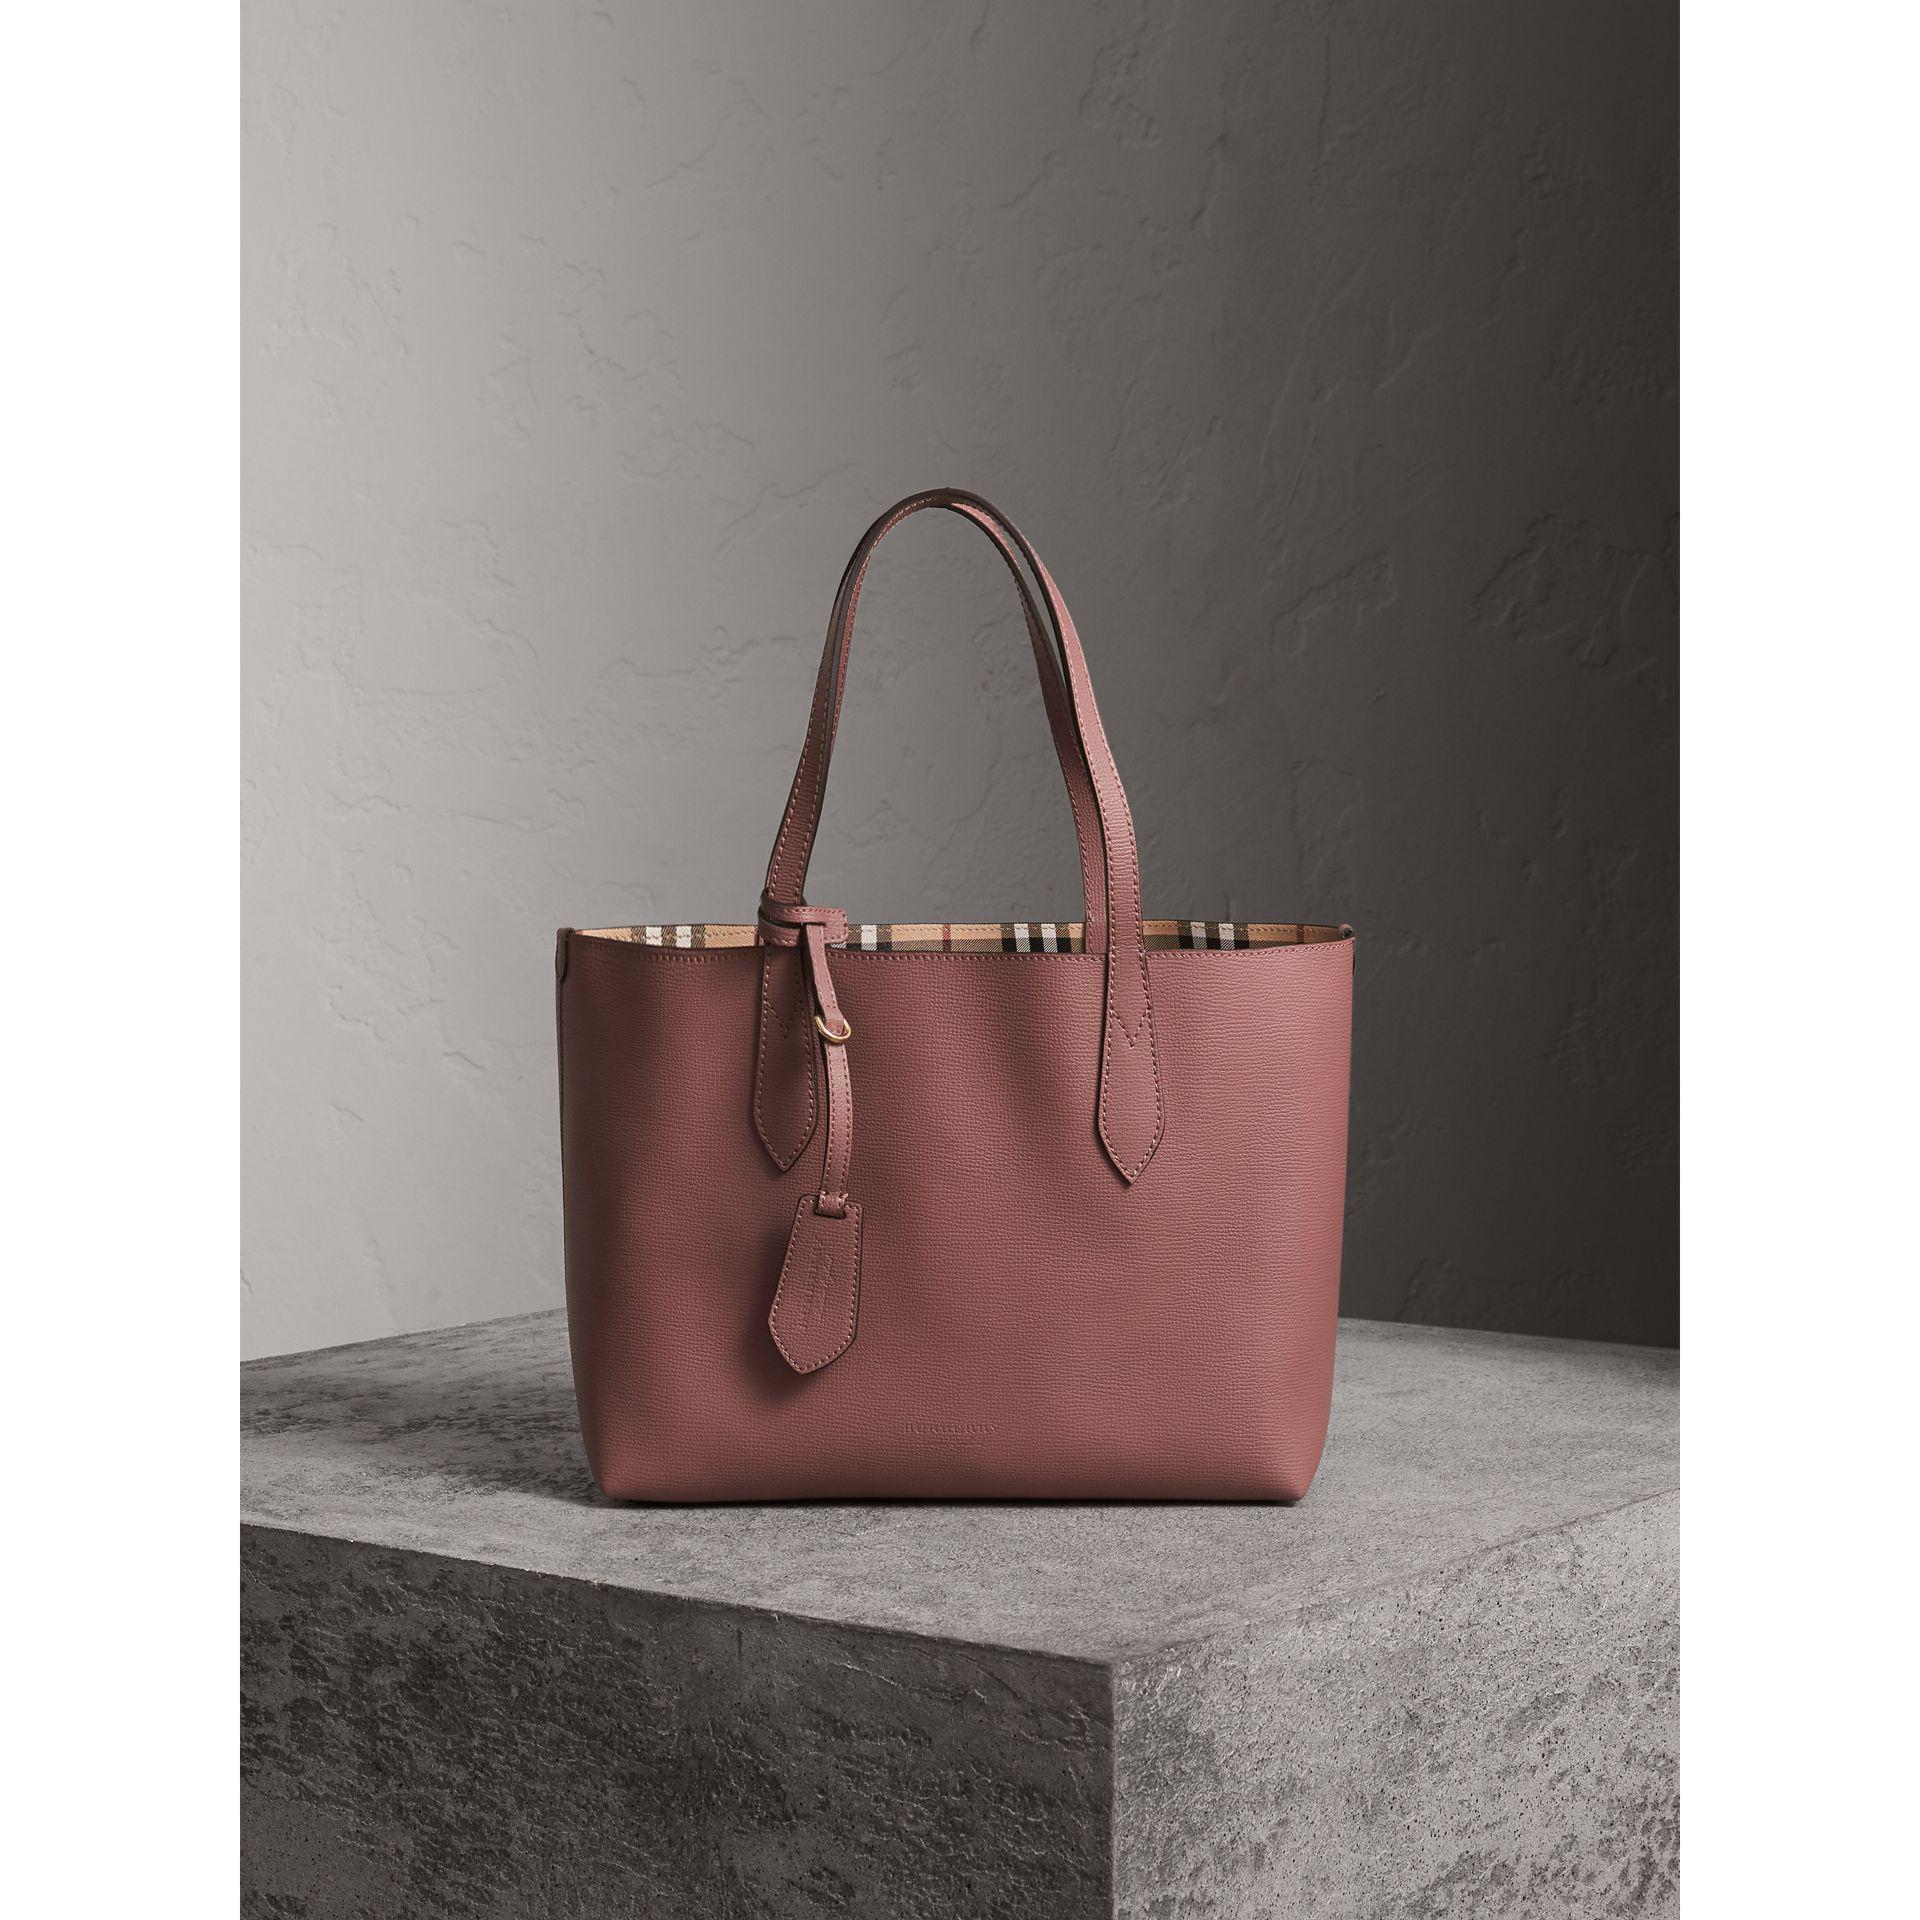 3a9e642a32e5 Lyst - Burberry The Small Reversible Tote In Haymarket Check And ...